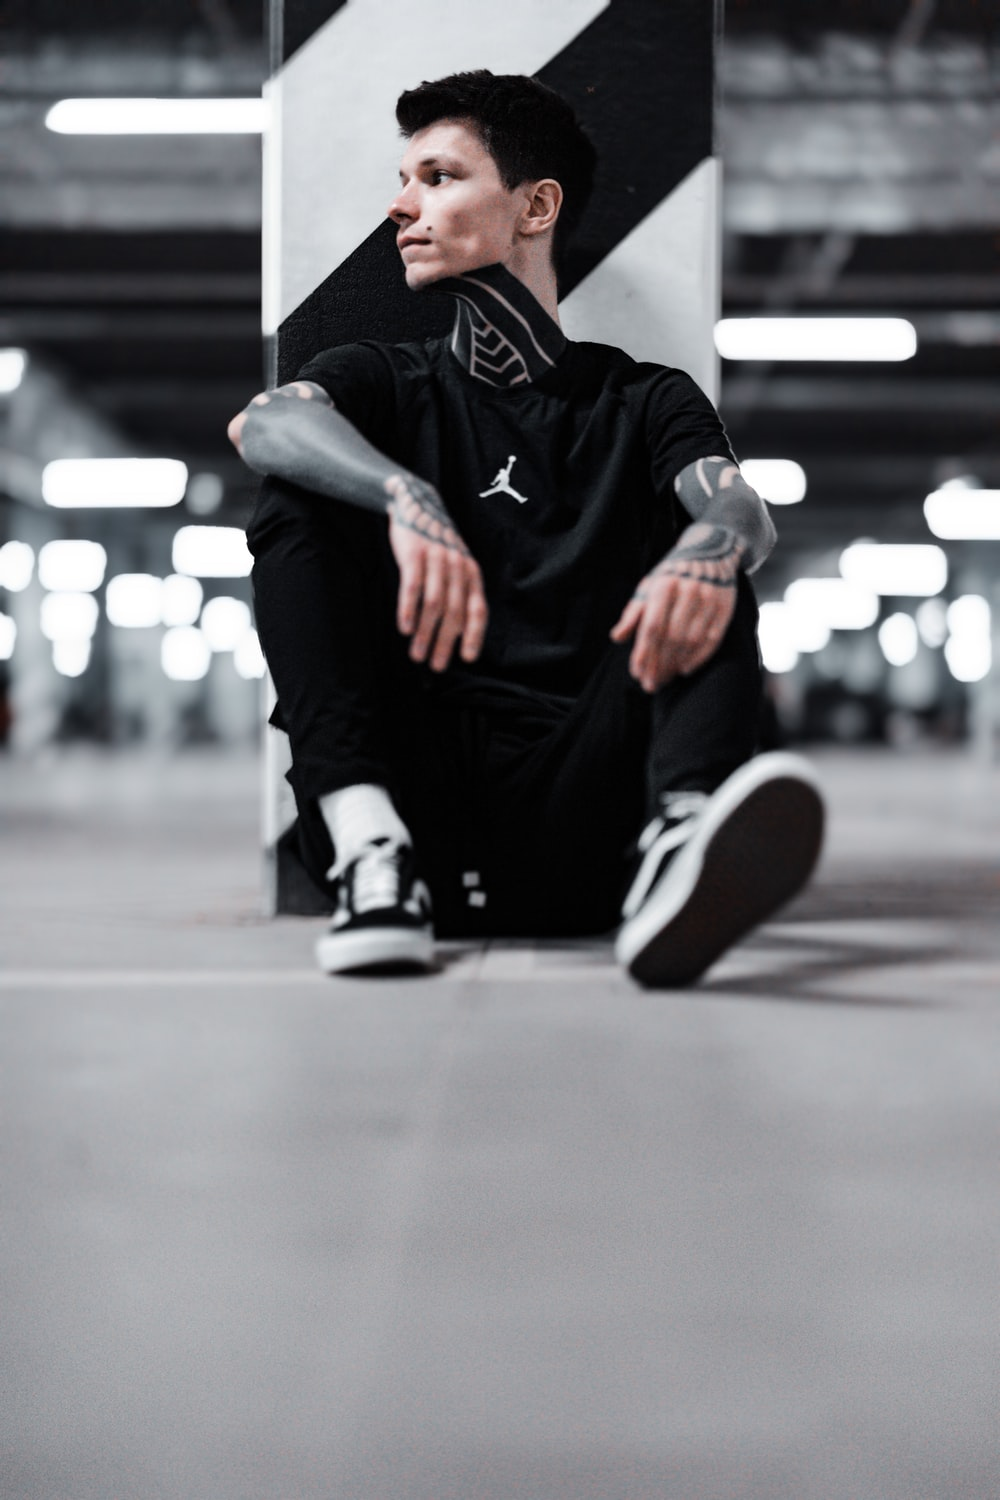 man in black and white nike sneakers sitting on floor